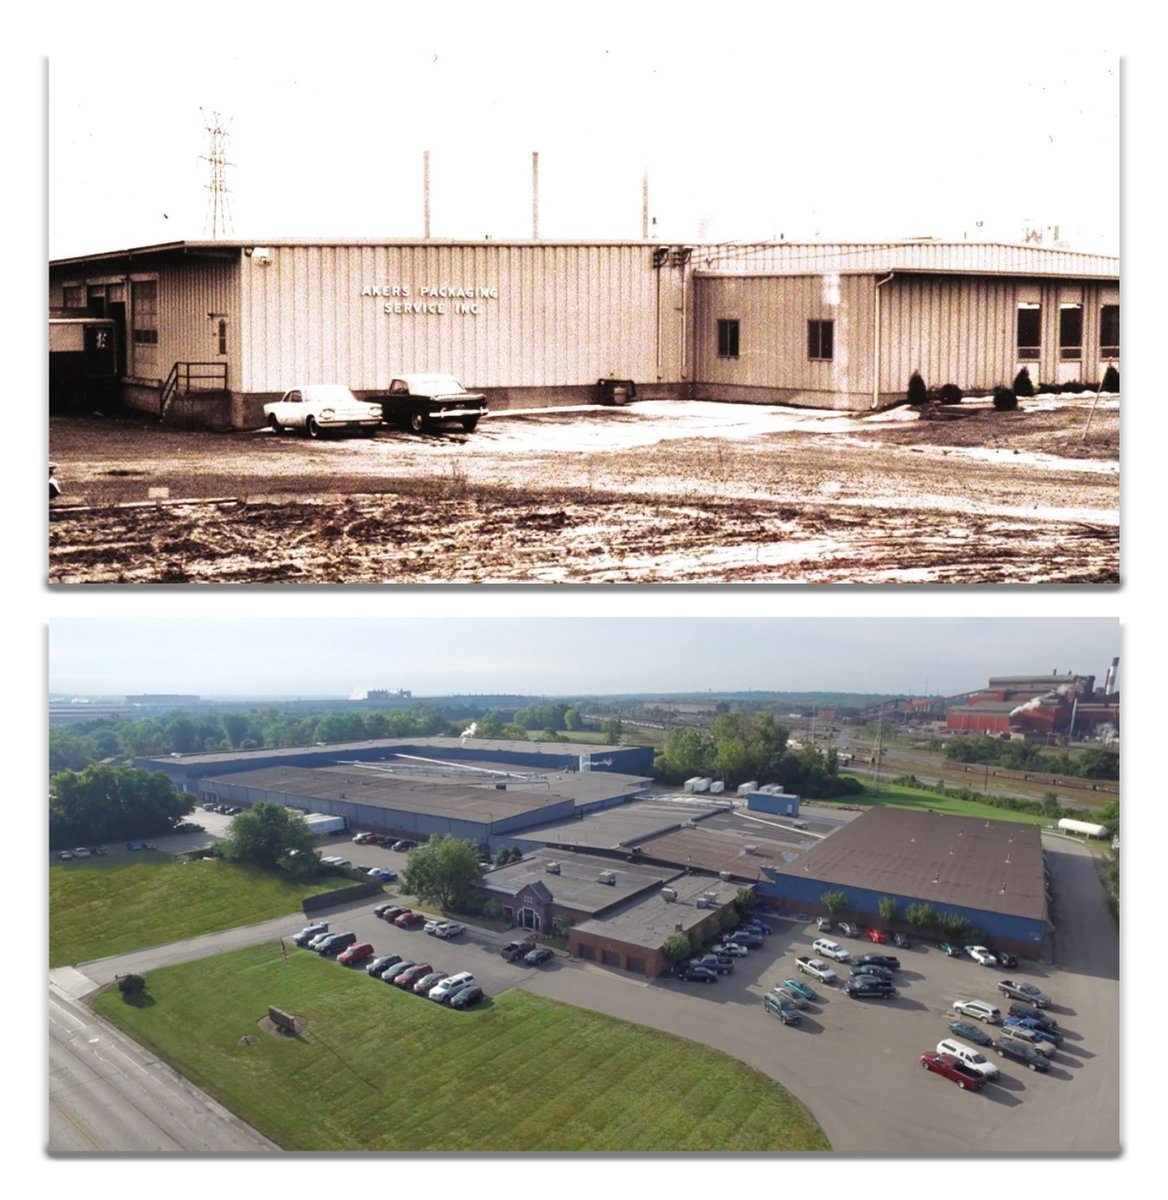 Founded in 1963 and going strong!  #ThrowbackThursday  #Sustainability #Growth pic.twitter.com/JBLFLV1Pud